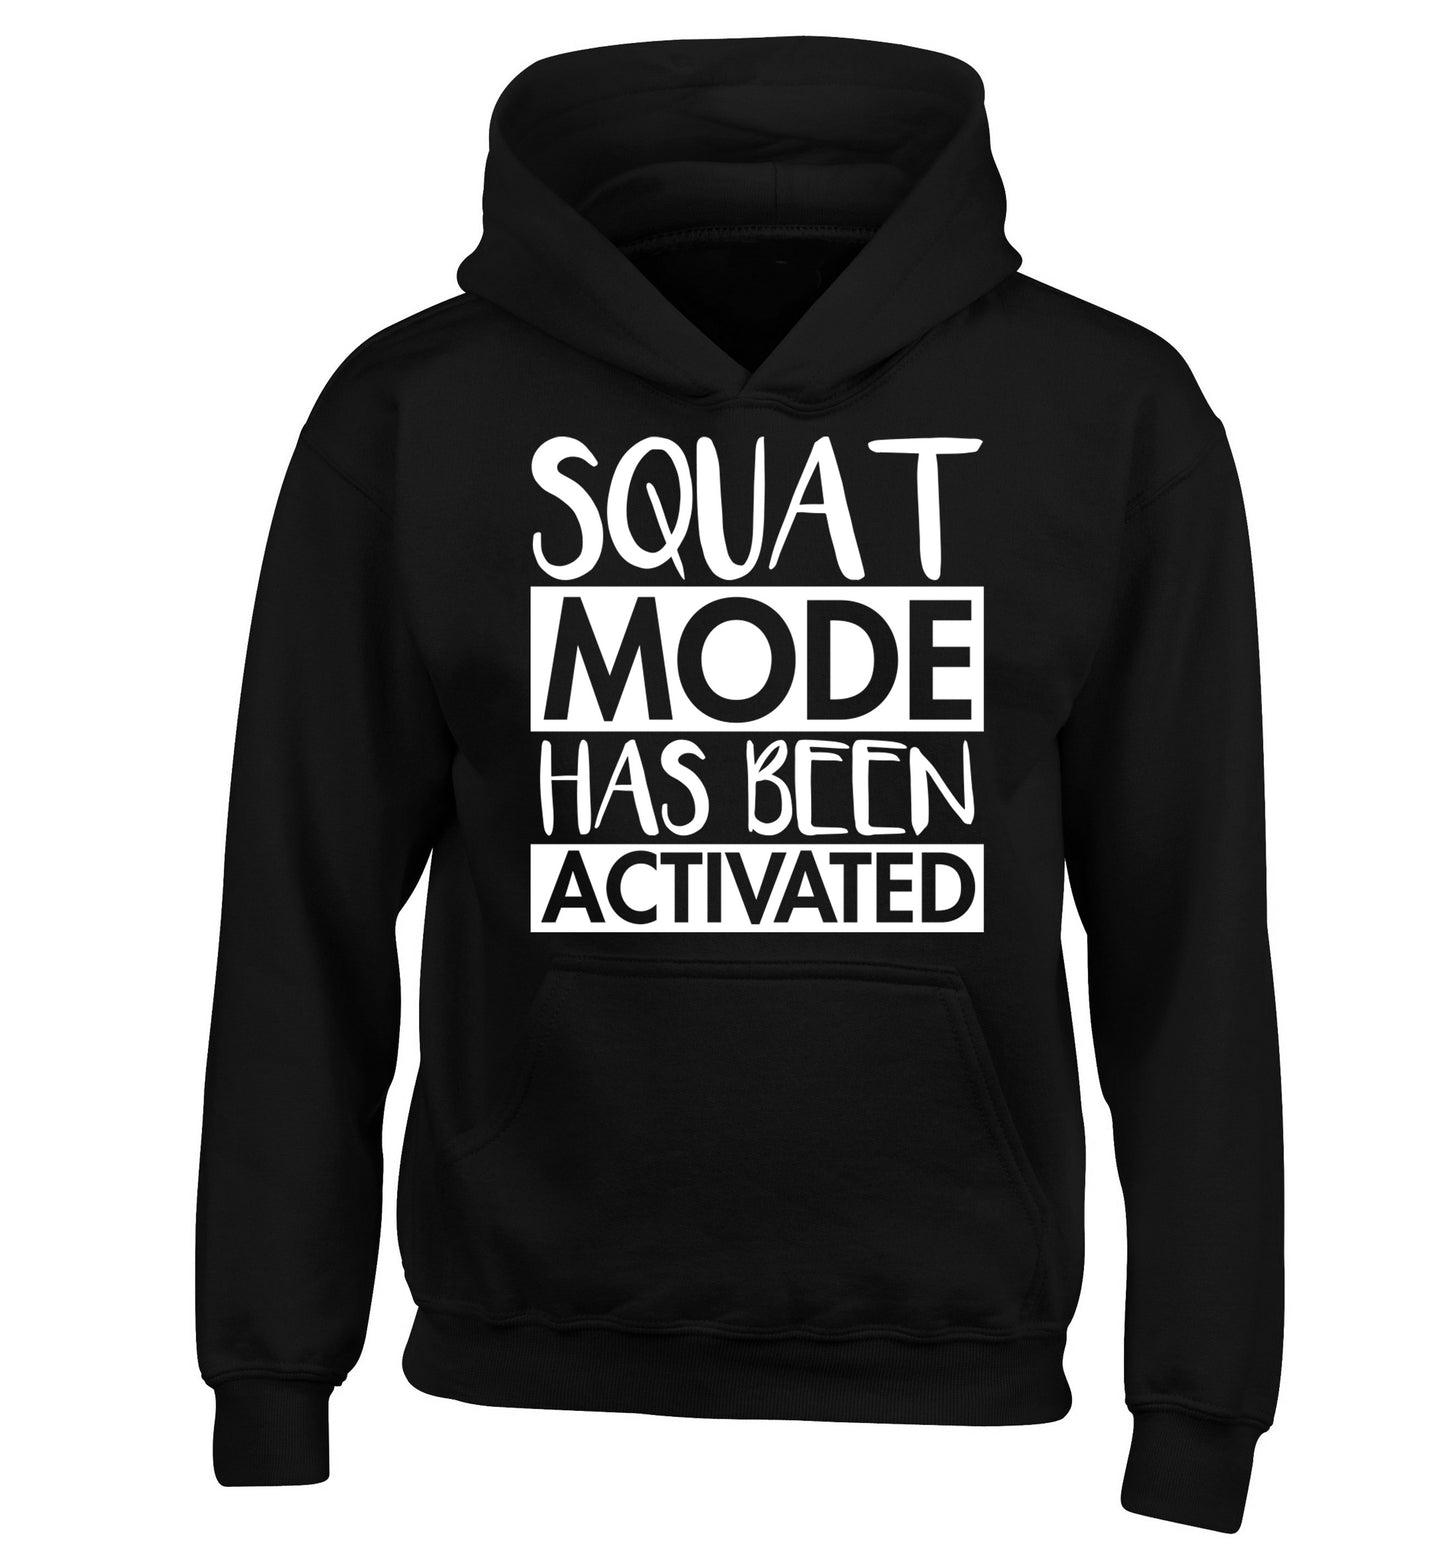 Squat mode activated children's black hoodie 12-14 Years